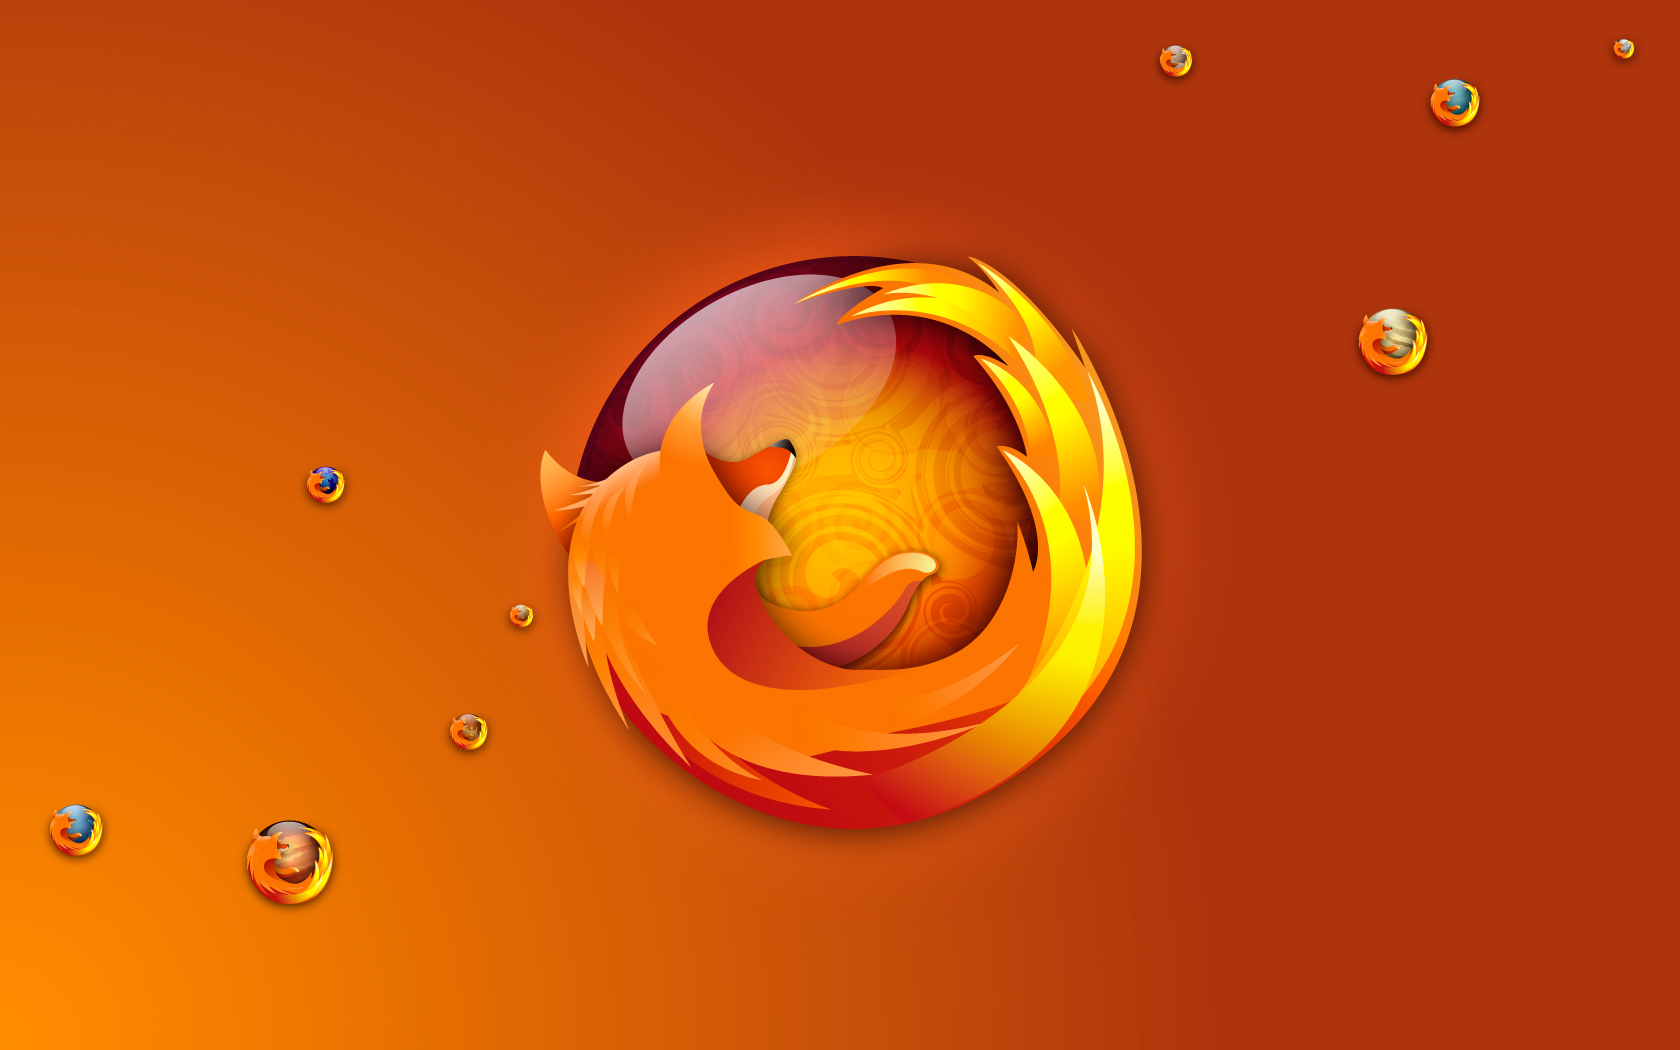 Firefox Bubbles 221.52 Kb